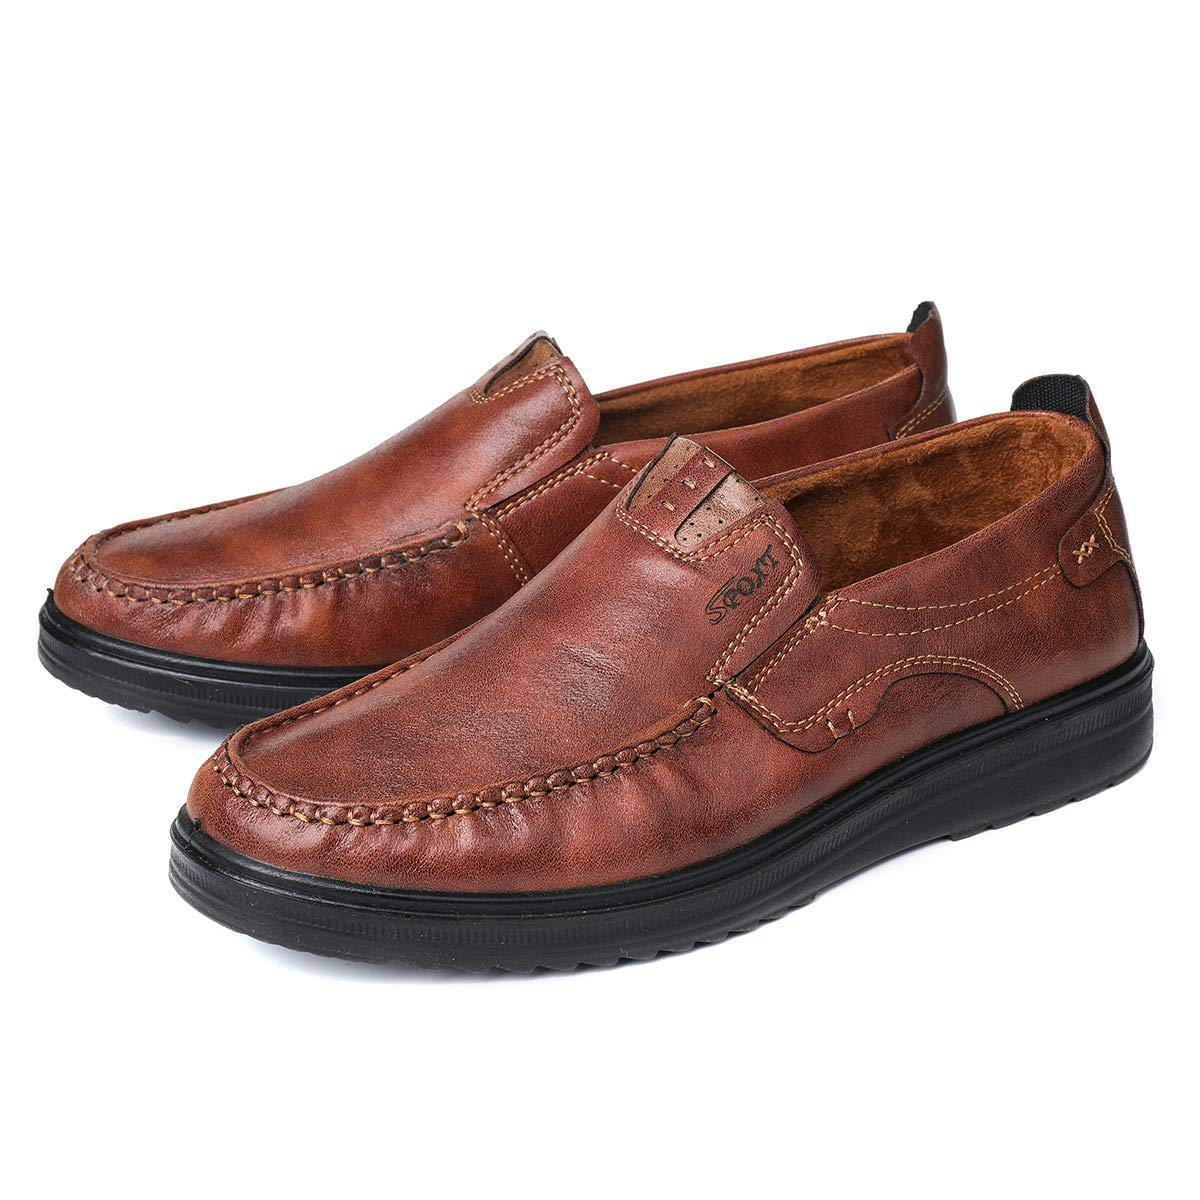 Mens Nonslip Leather Business Casual Boat Shoes Driving Moccasin Lace Up Loafers